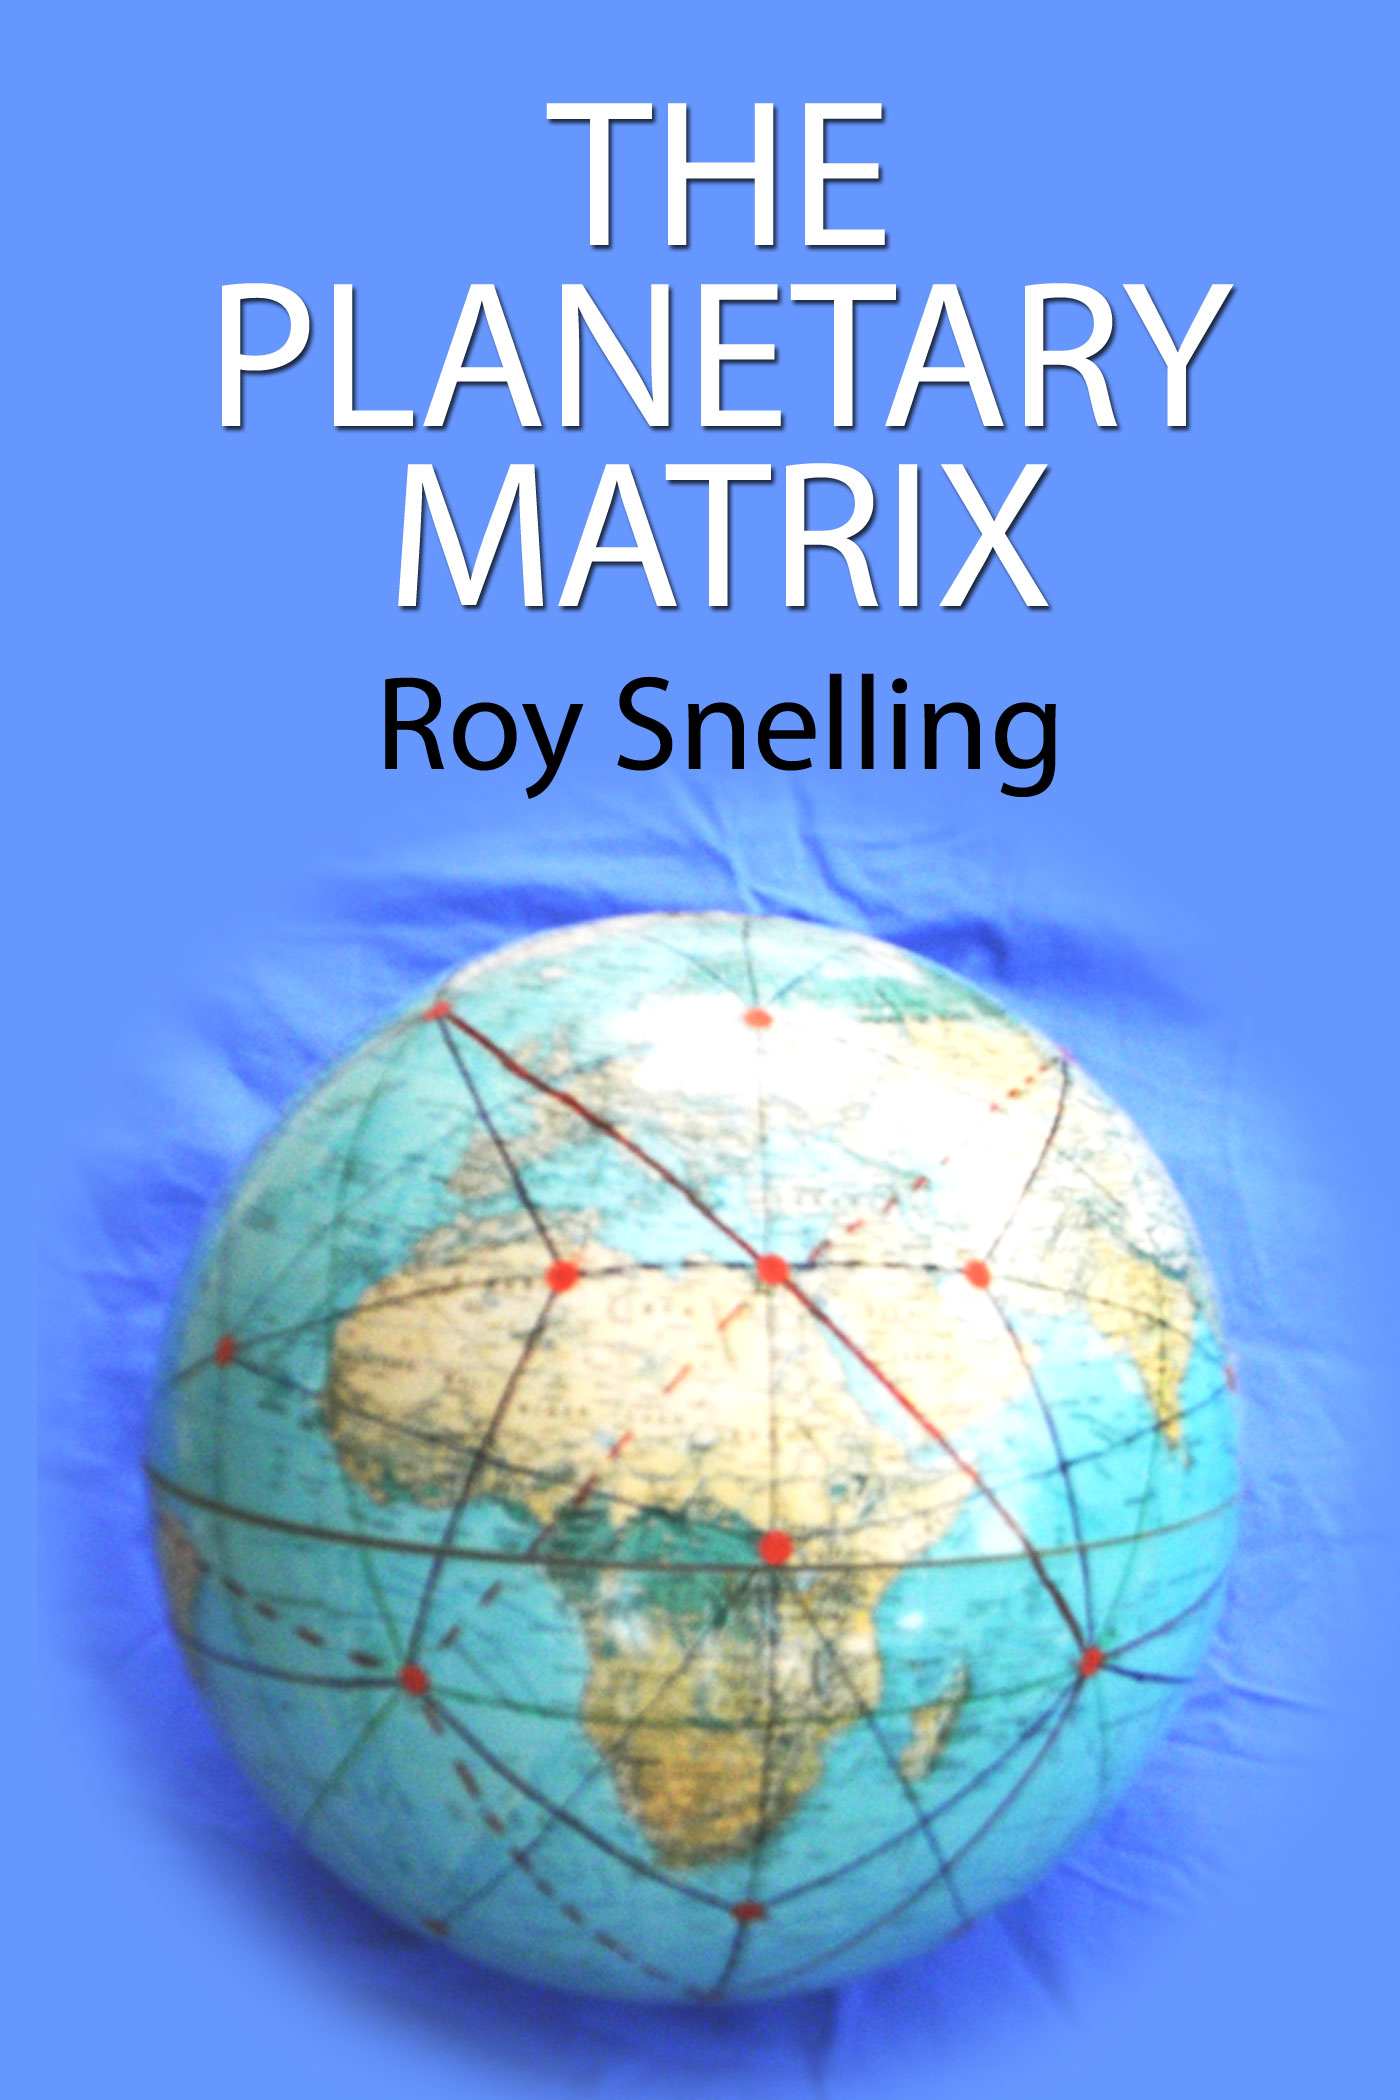 The Planetary Matrix